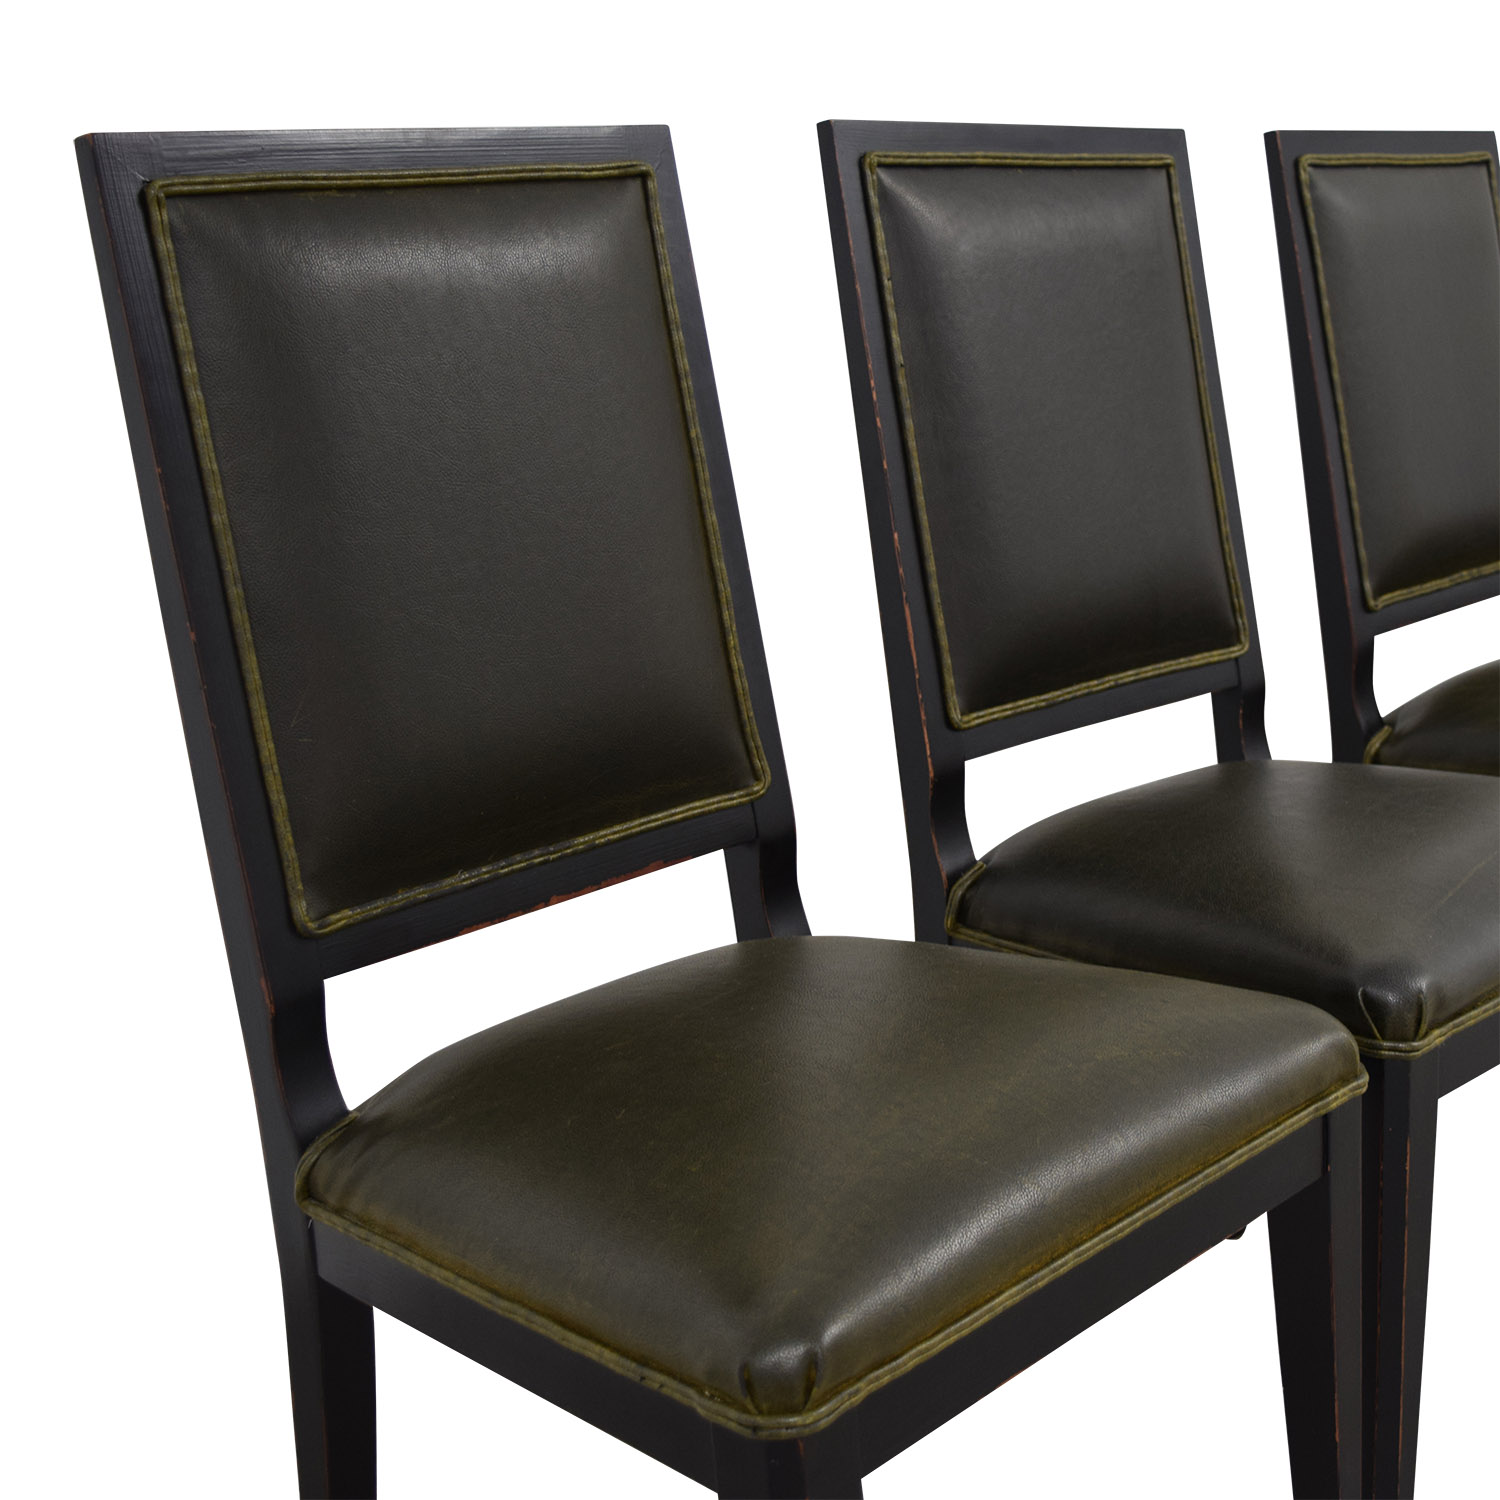 Crate & Barrel Crate & Barrel Sonata Dark Green Leather Chairs discount